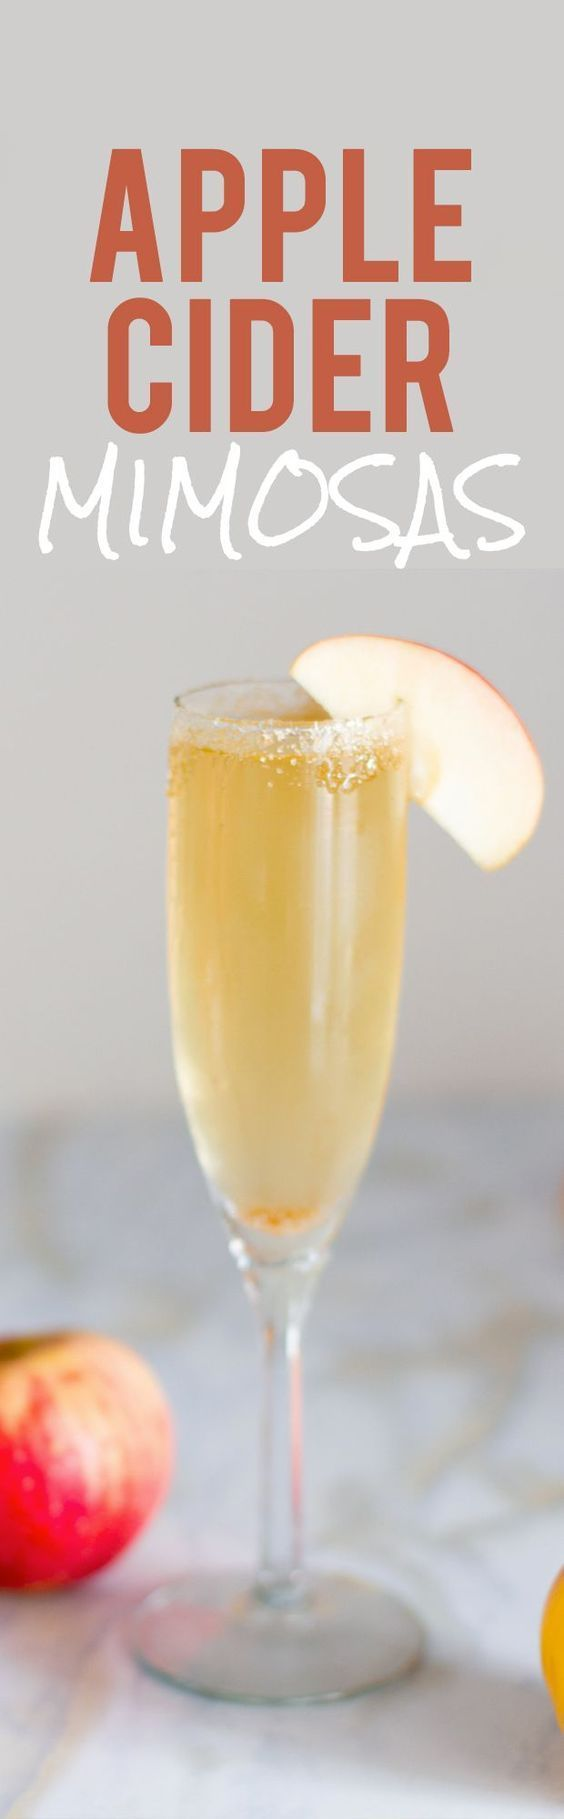 Thanksgiving recipes - Apple Cider Mimosas. Perfect for fall or Thanksgiving celebrations.